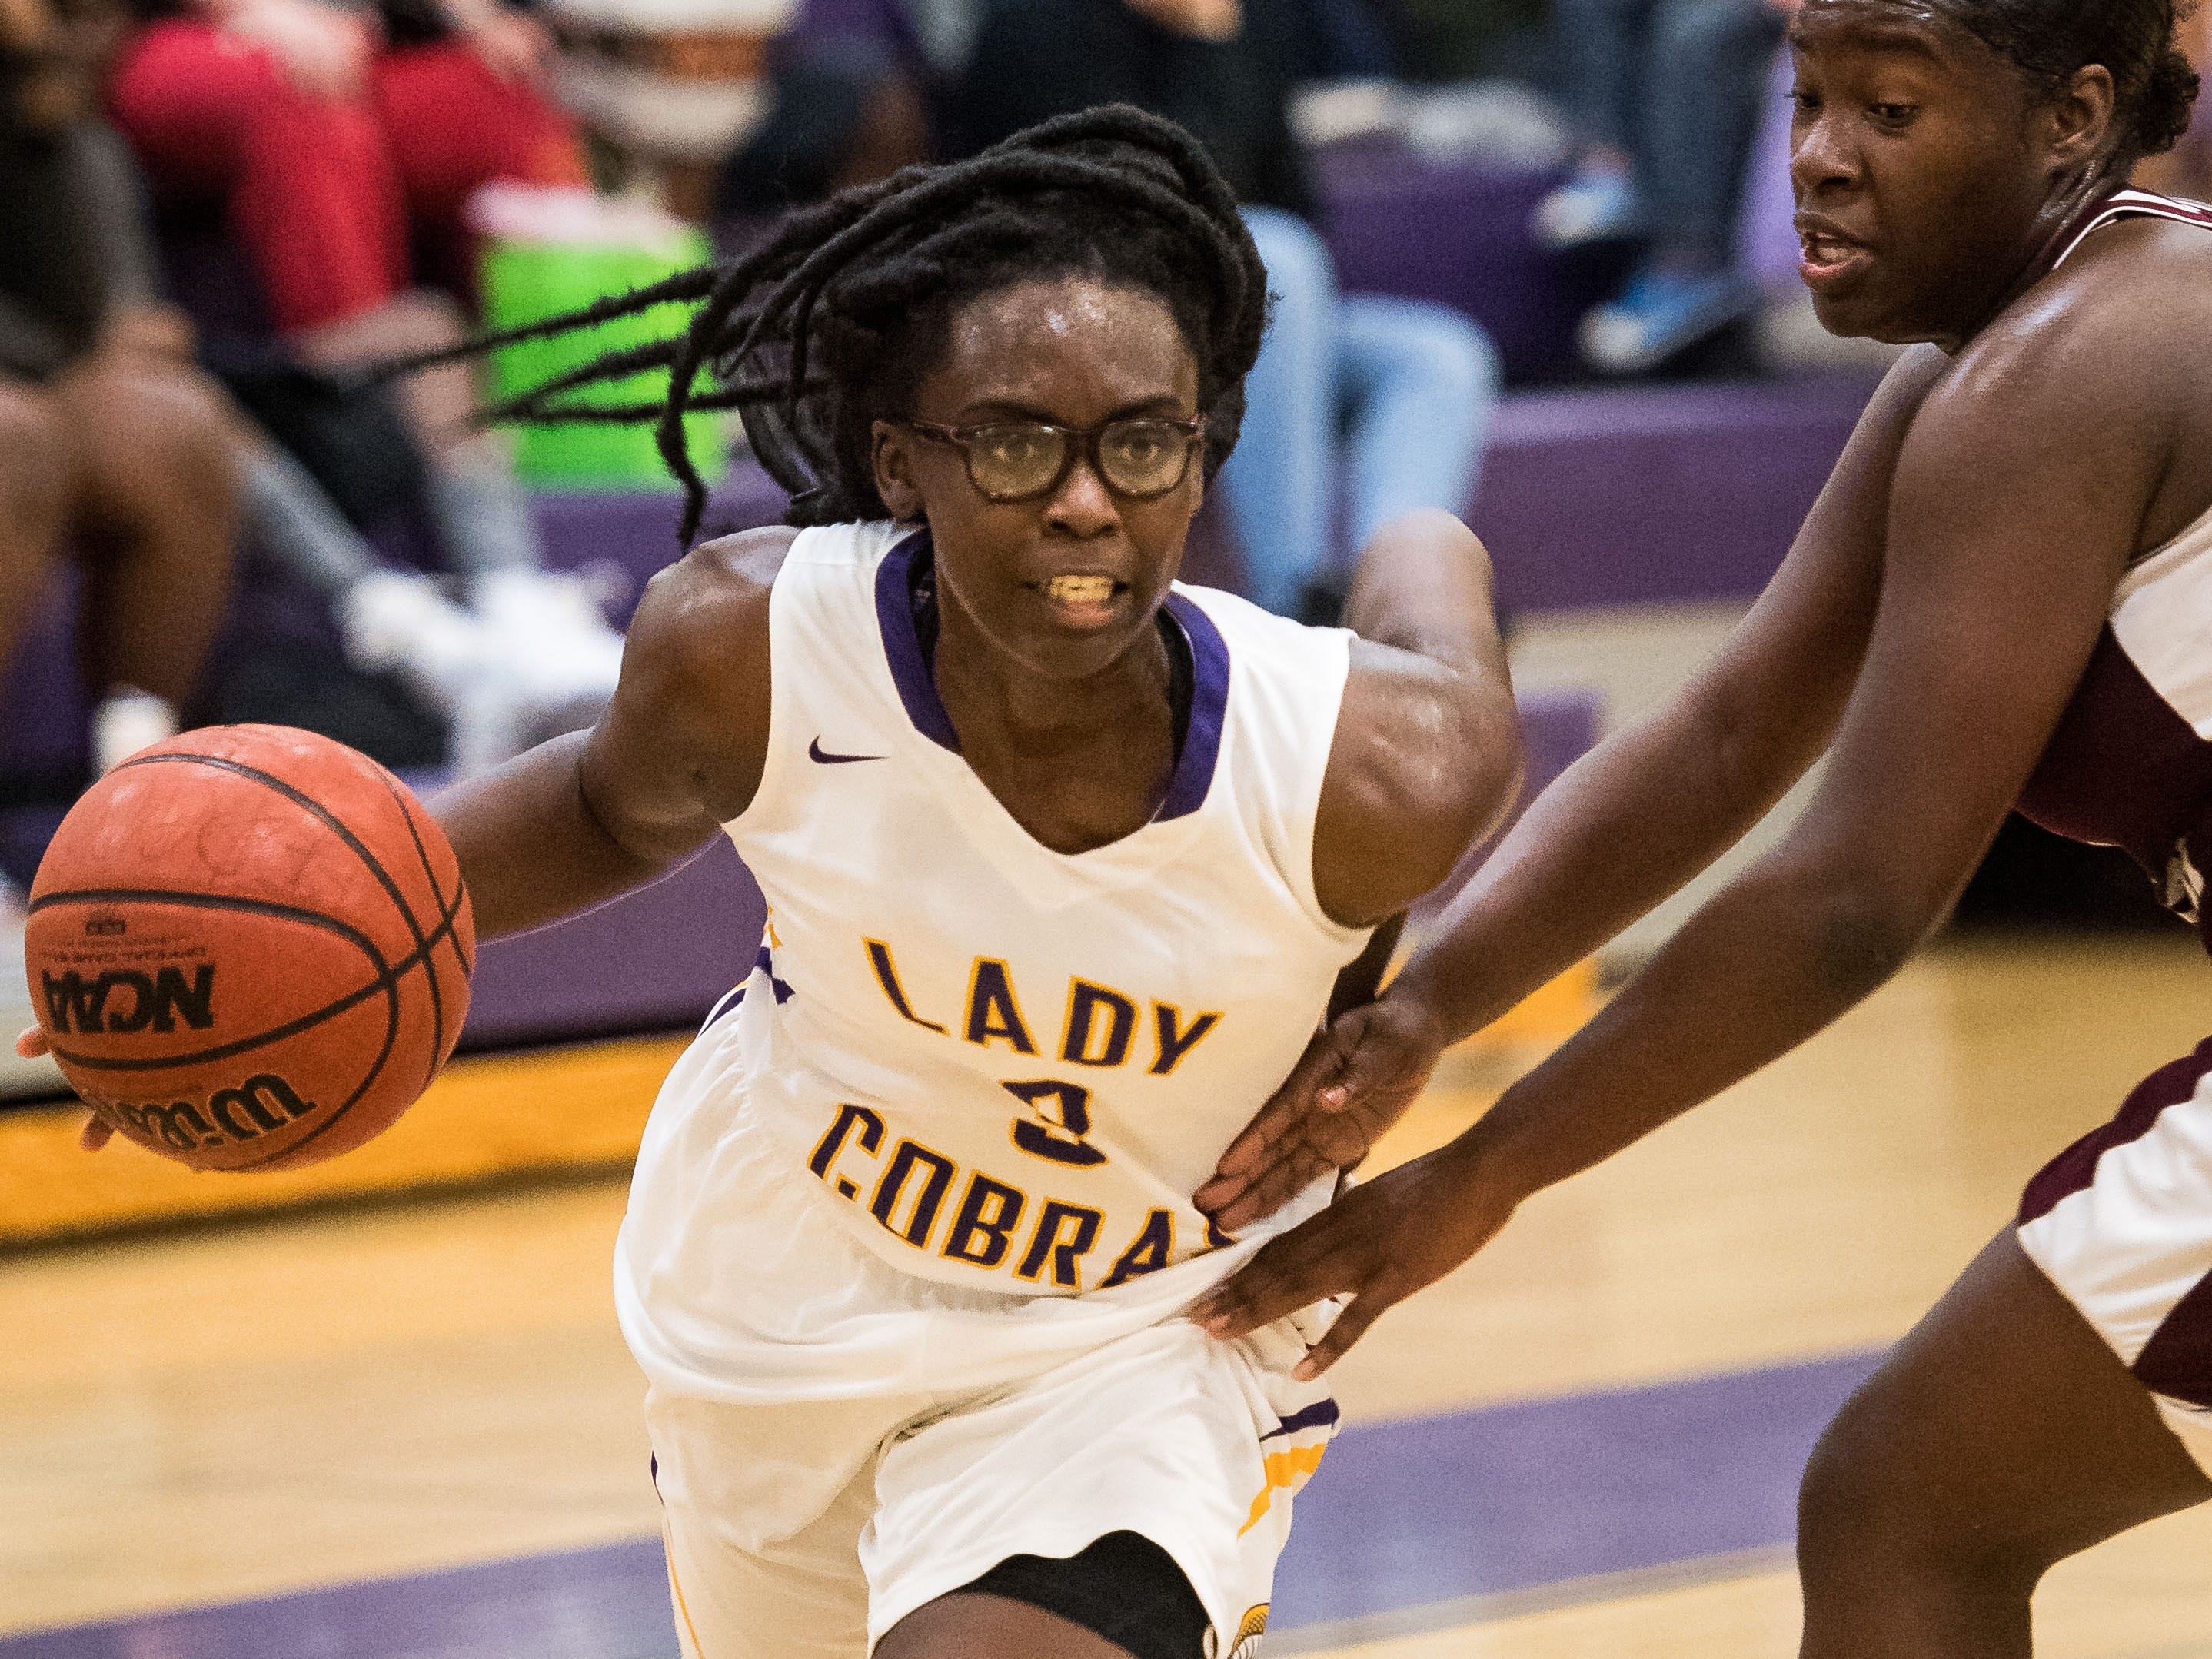 Fort Pierce Central's Trinity Michel (left) breaks past Lake Worth's Lovely Janvier to take a shot in the second period during the high school girls basketball game Thursday, Jan. 31, 2019, at Fort Pierce Central High School.